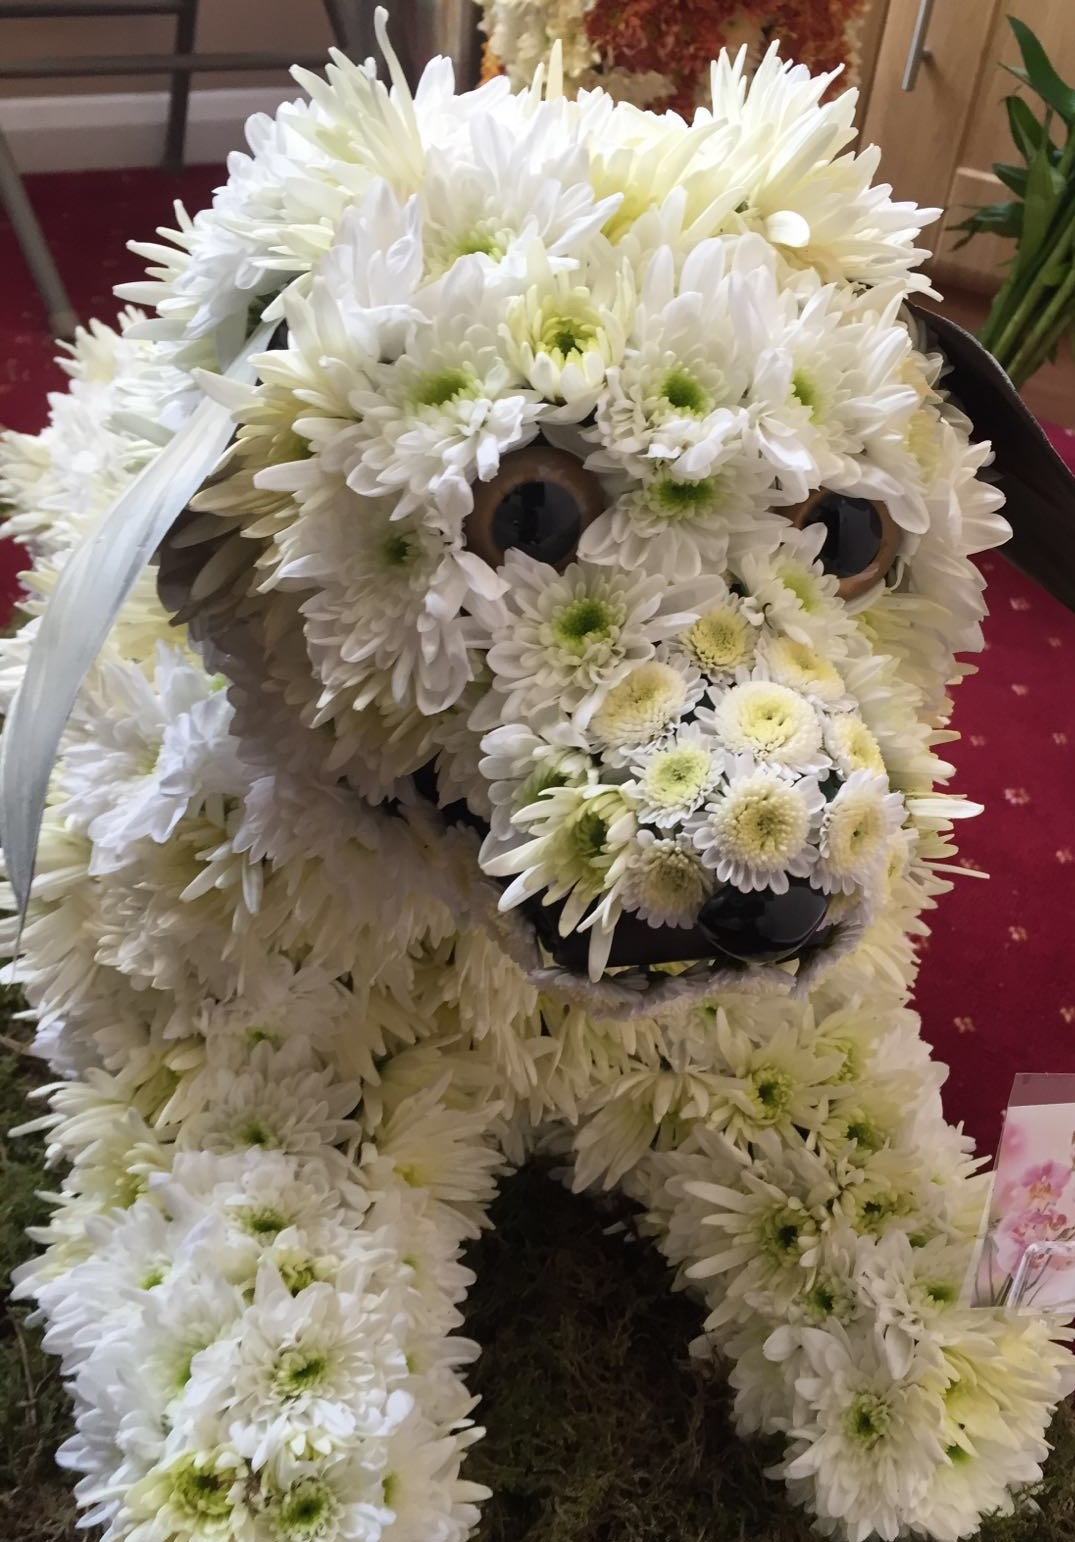 Themed floral tributes first impression flowers floral labrador izmirmasajfo